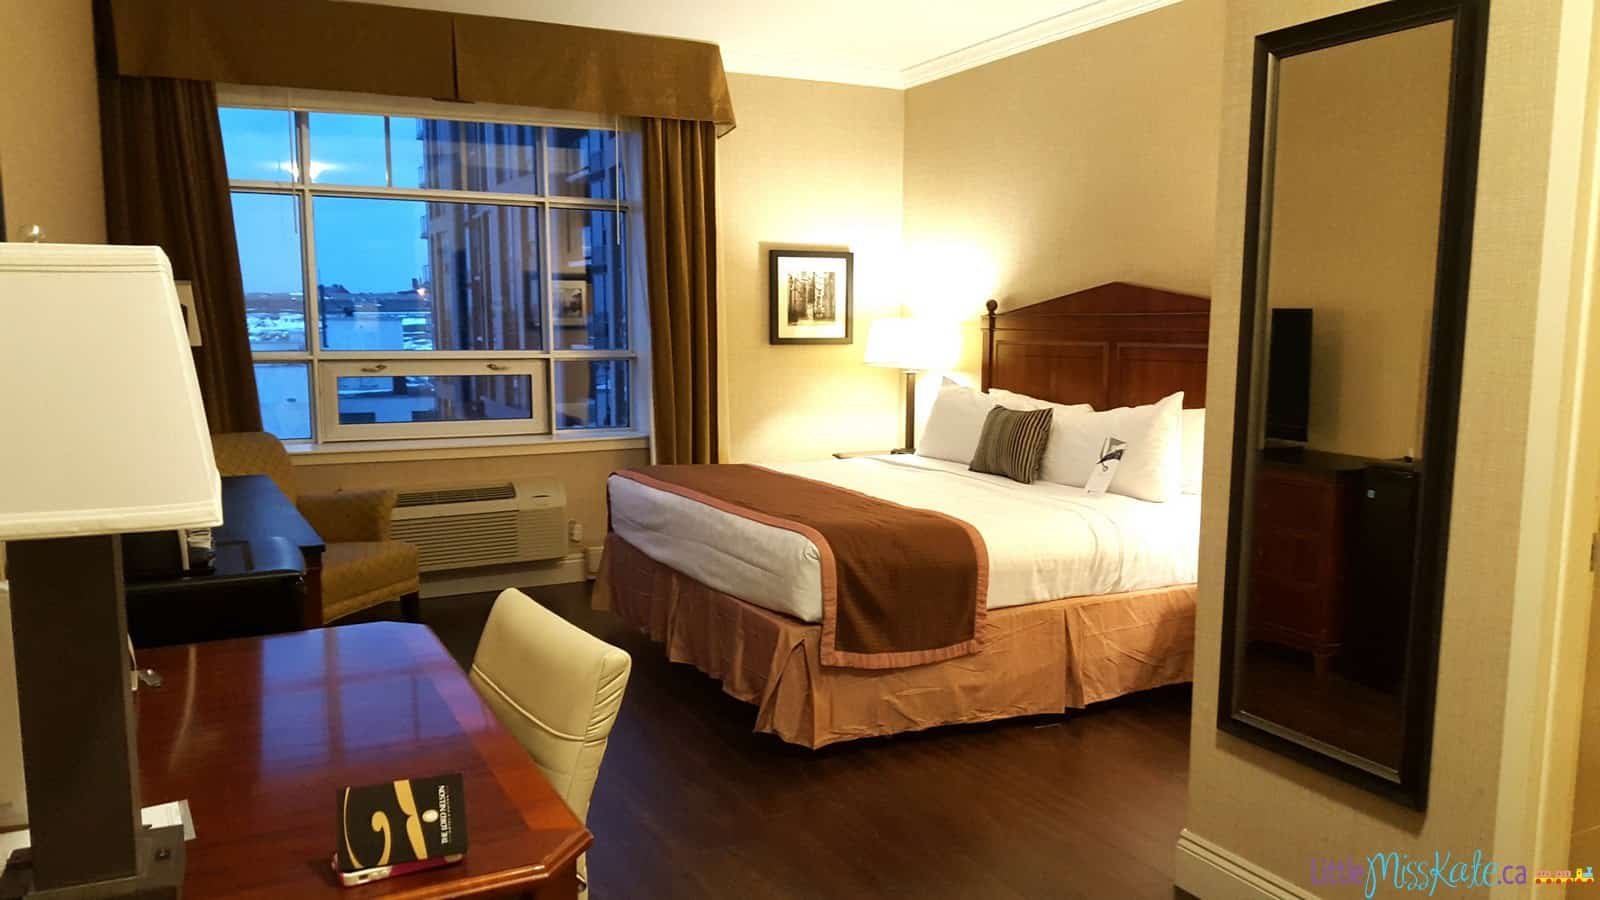 Lord Nelson Hotel and suites downtown halifax review